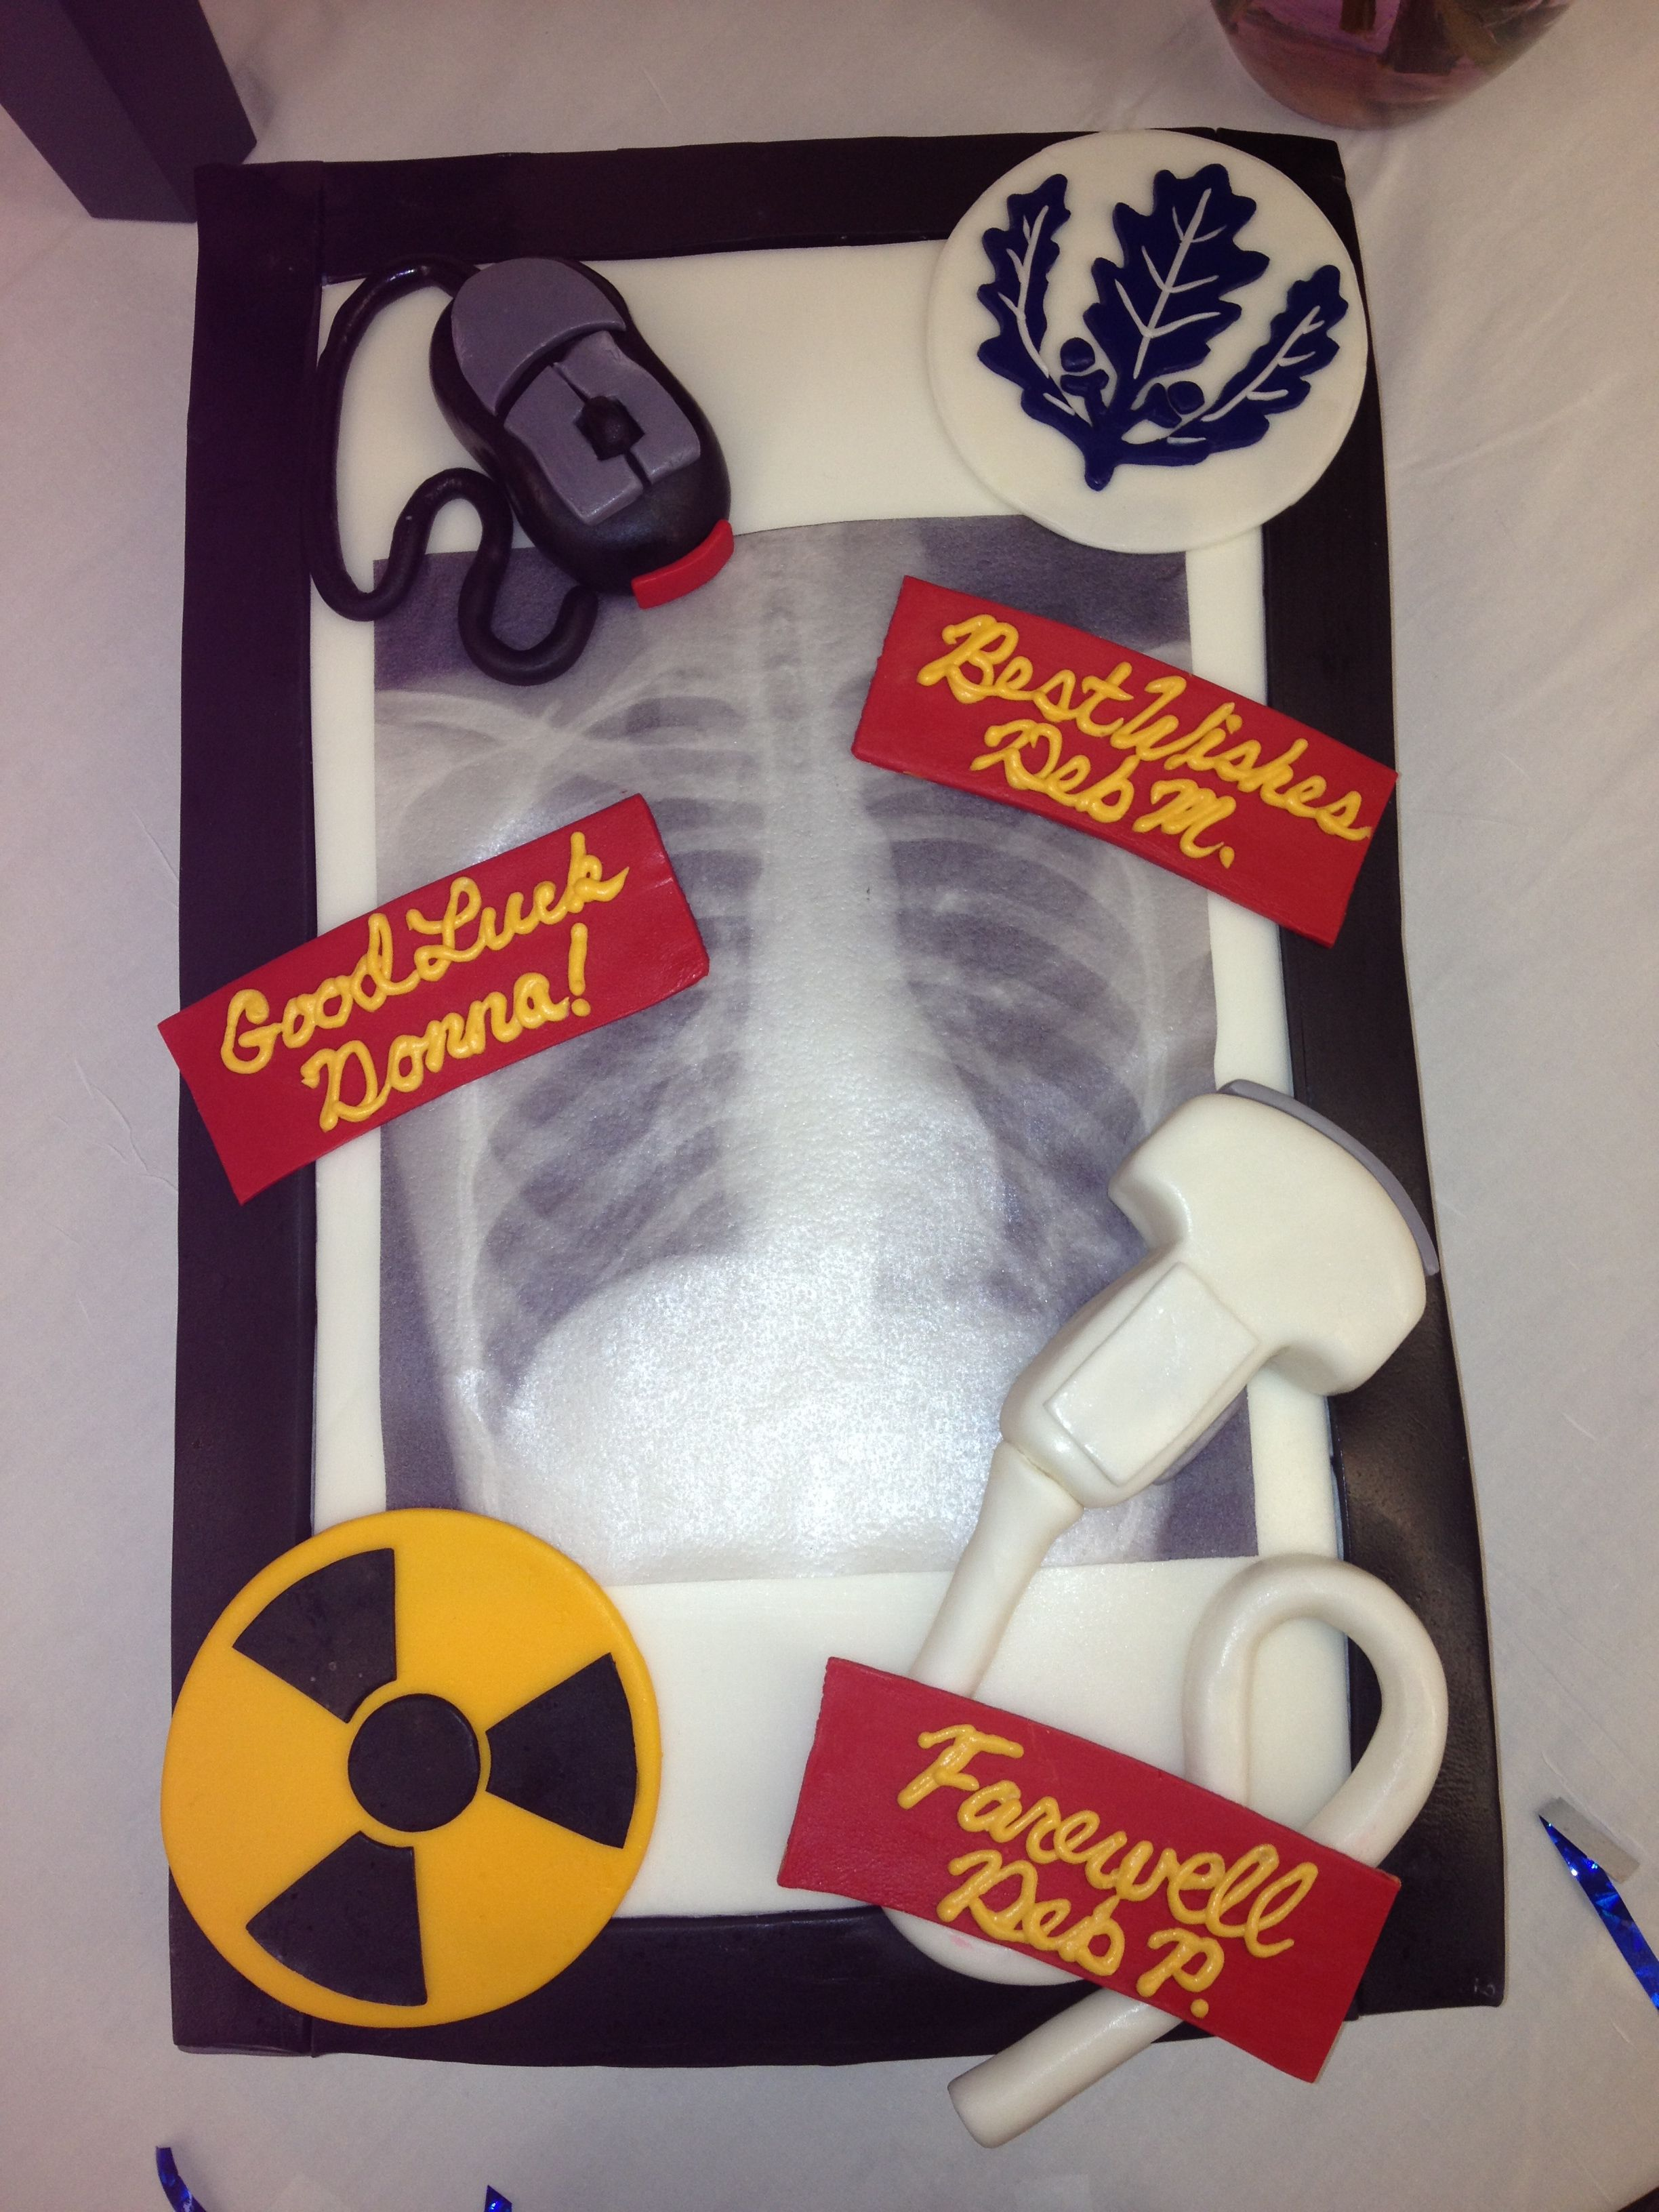 Happy Radiography Day Cake